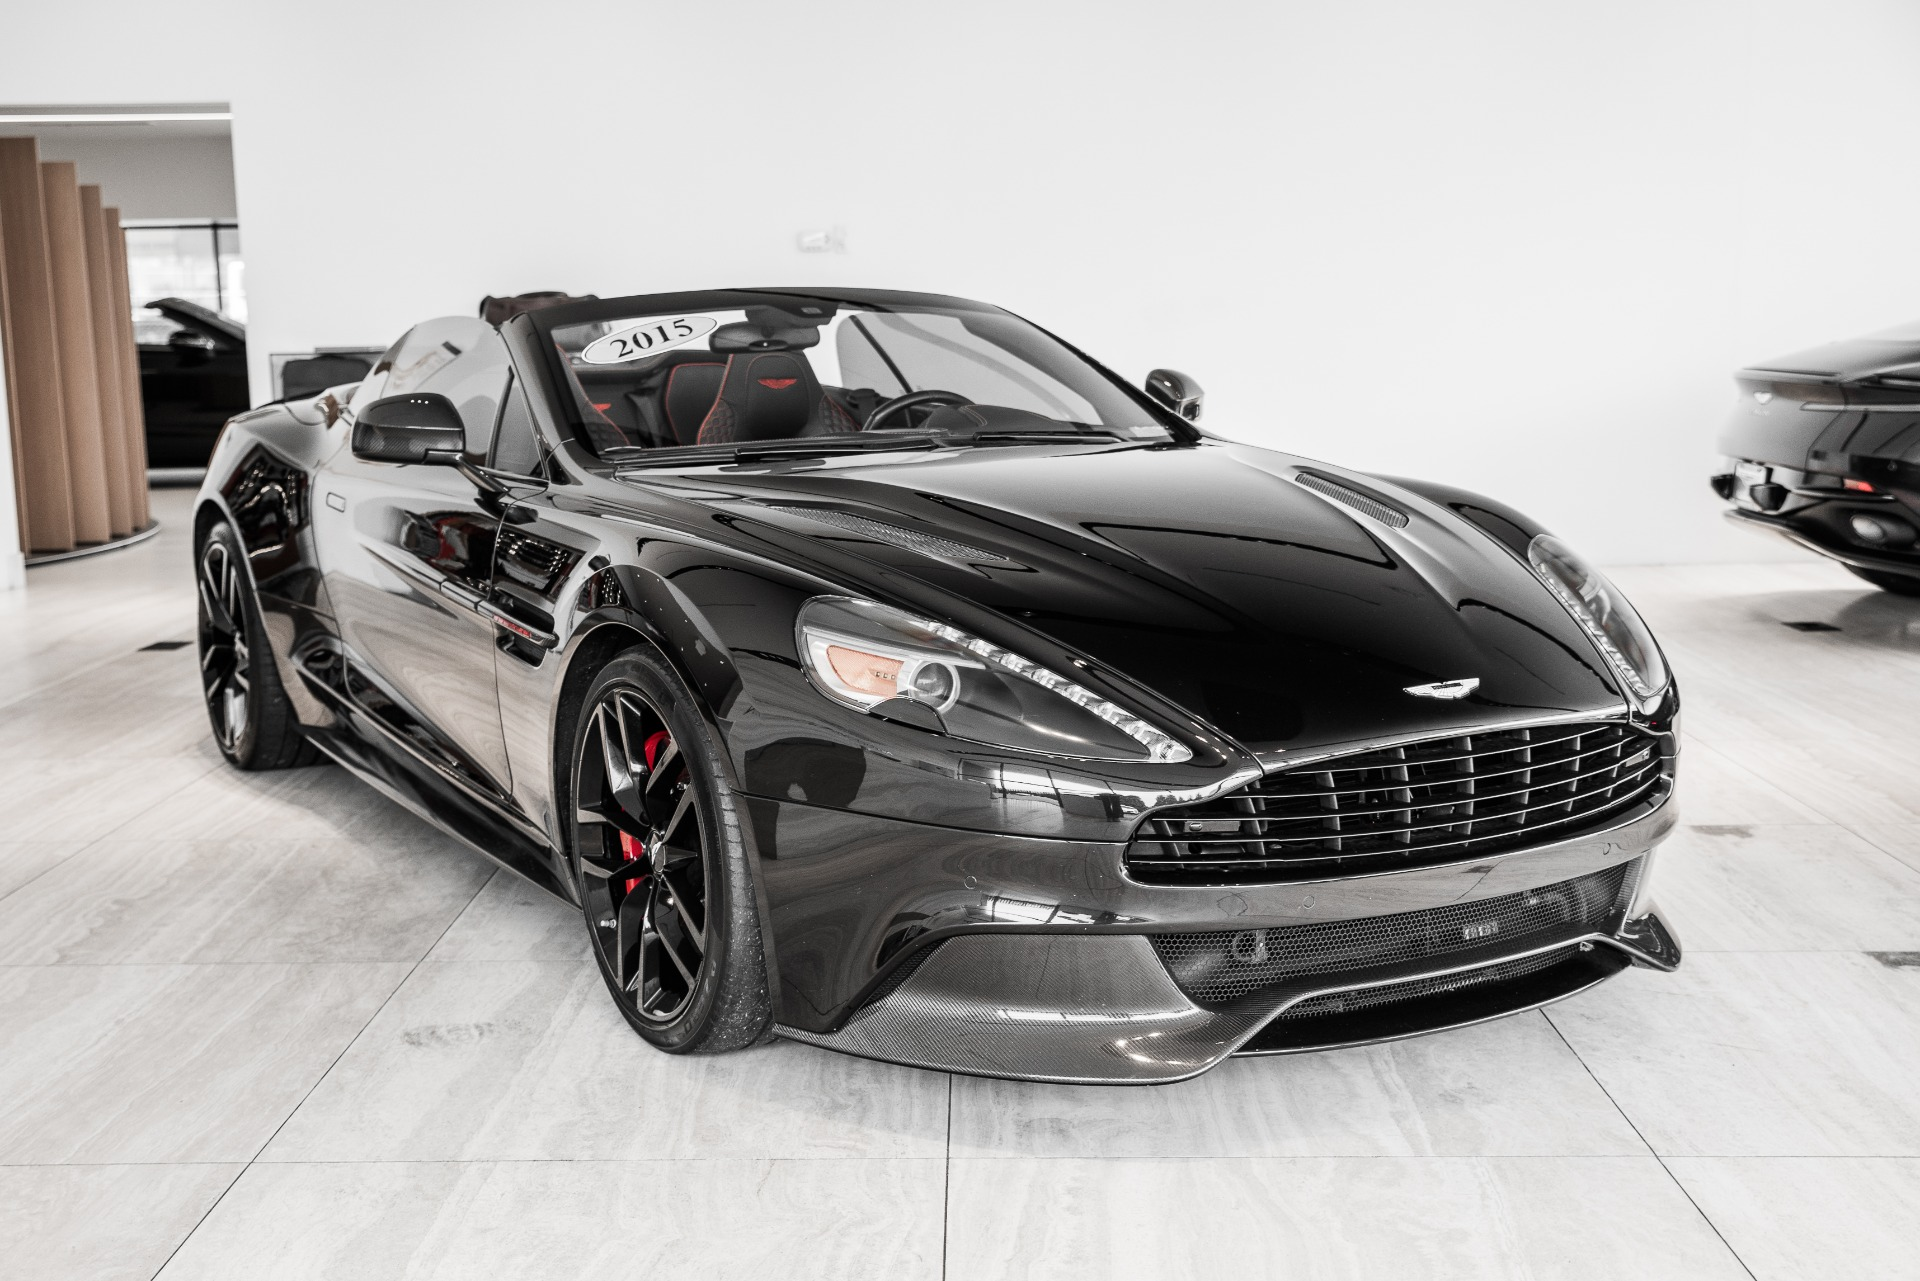 2015 Aston Martin Vanquish Volante Stock 20nm08460a For Sale Near Vienna Va Va Aston Martin Dealer